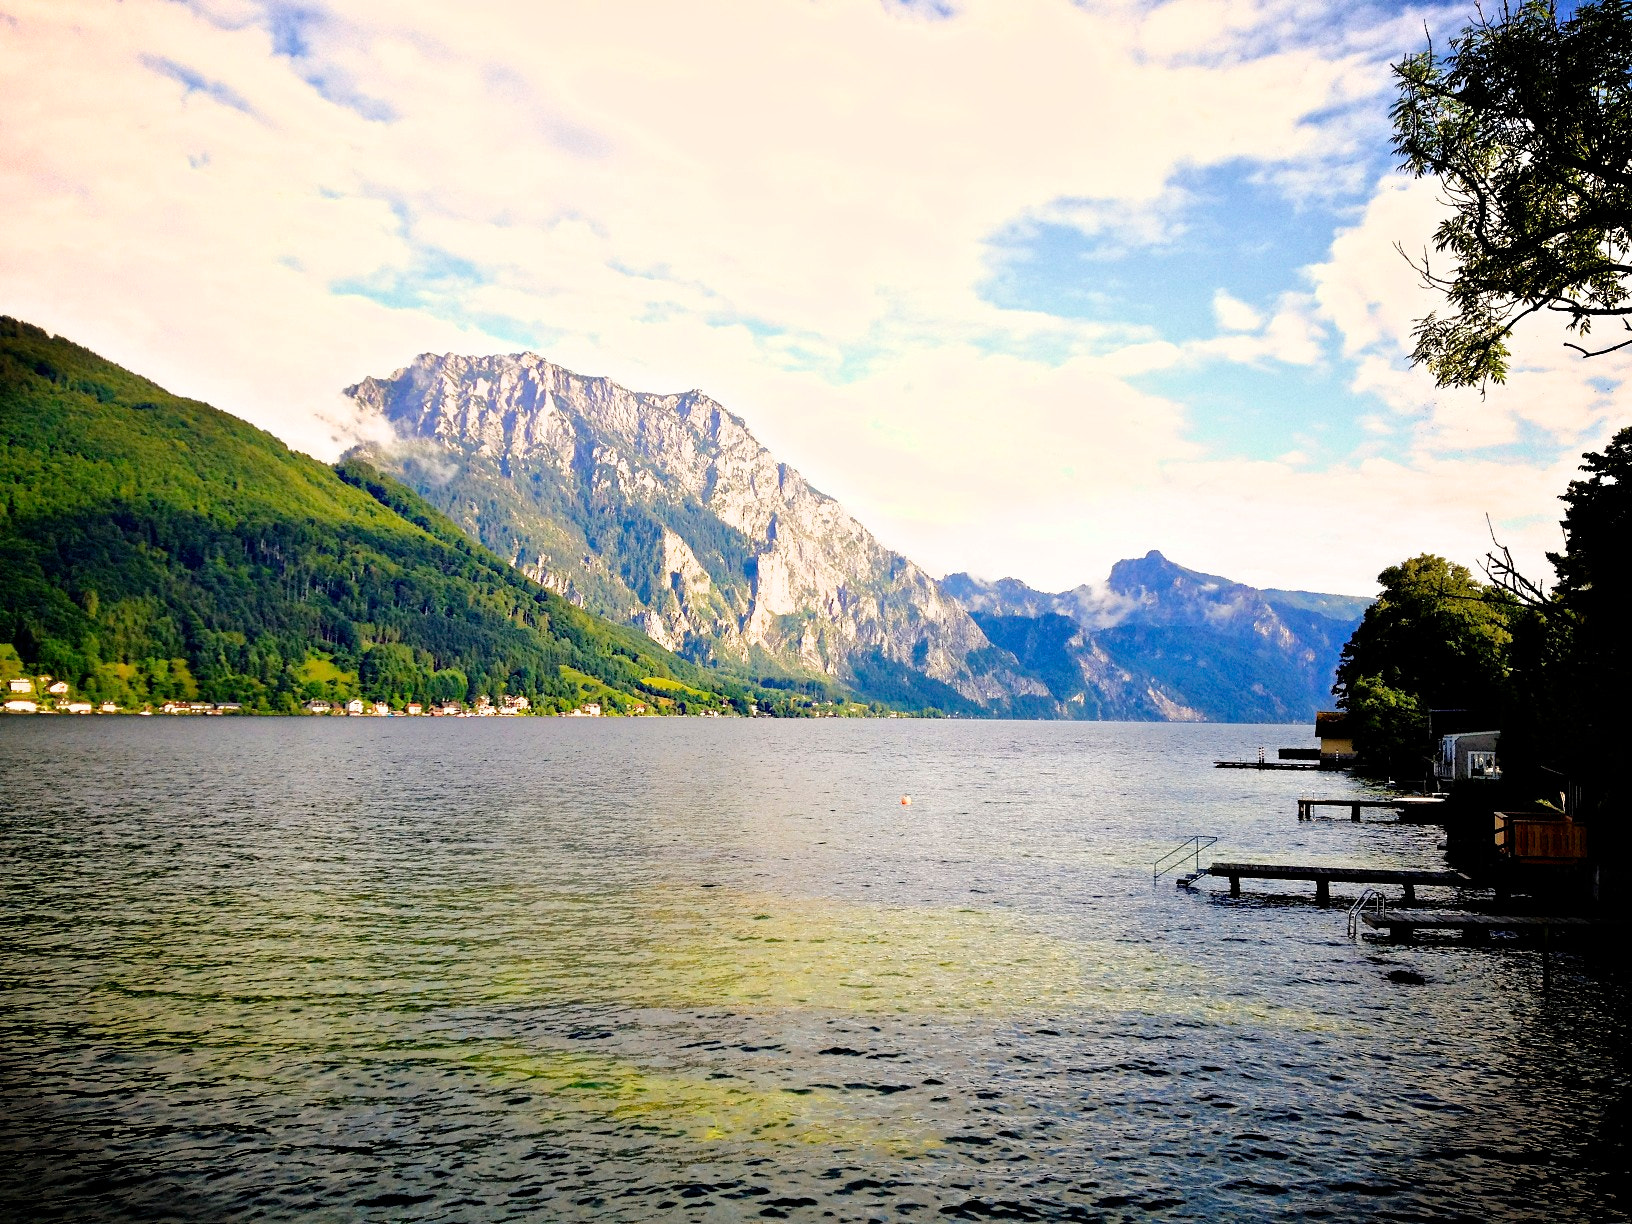 Photograph Gmunden, Lake Traunsee by Iker Irueta on 500px